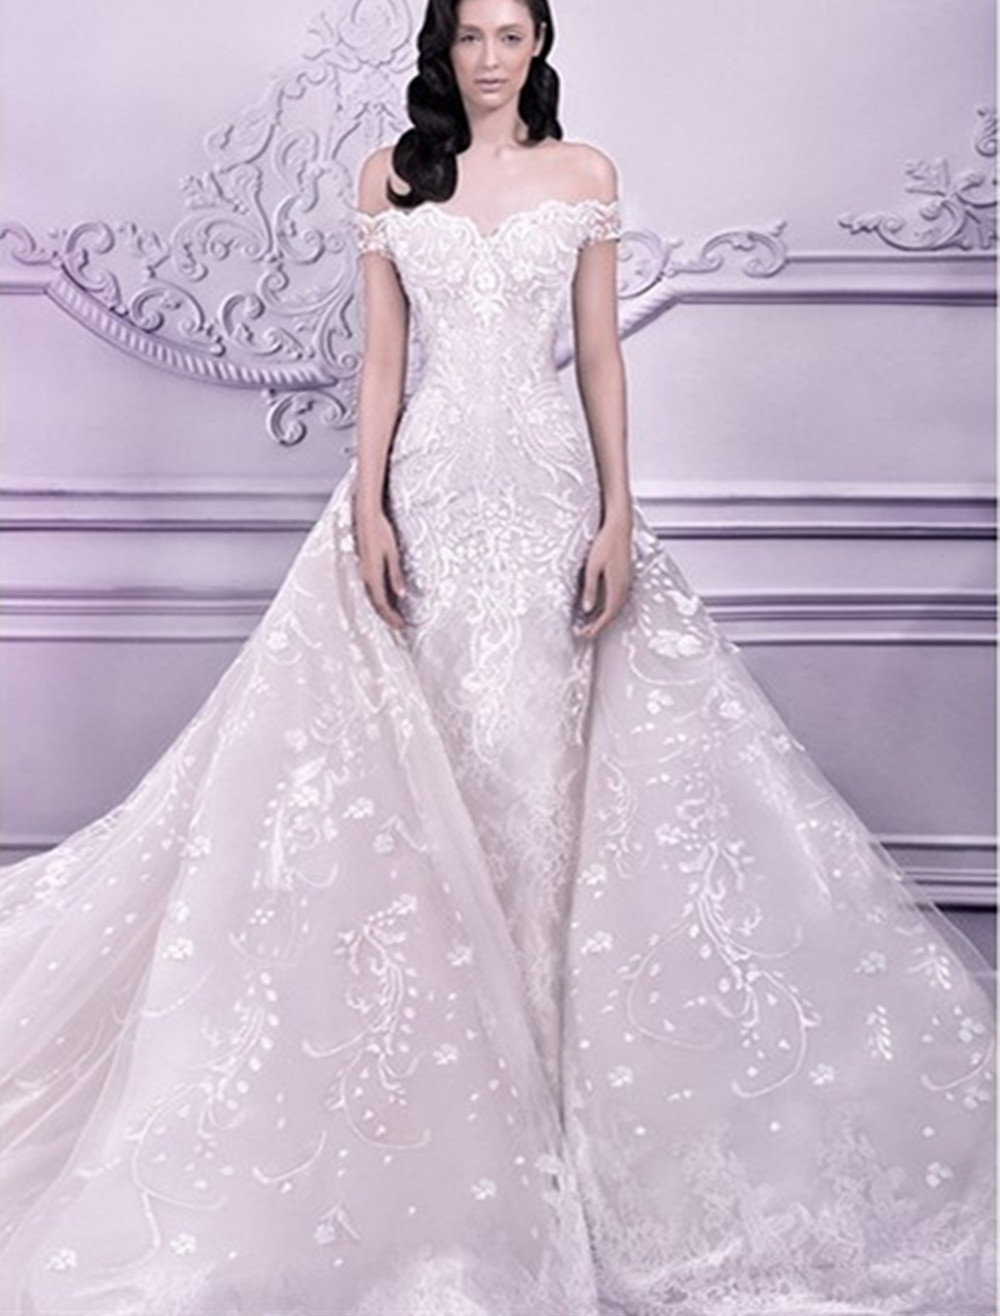 list detail expensive wedding dresses expensive wedding dress Newest Expensive Fashion Three Quarter Sleeve Brush Train Floor Length Ball Gown Wedding Dresses Vestidos Cheap With A Sash AT01